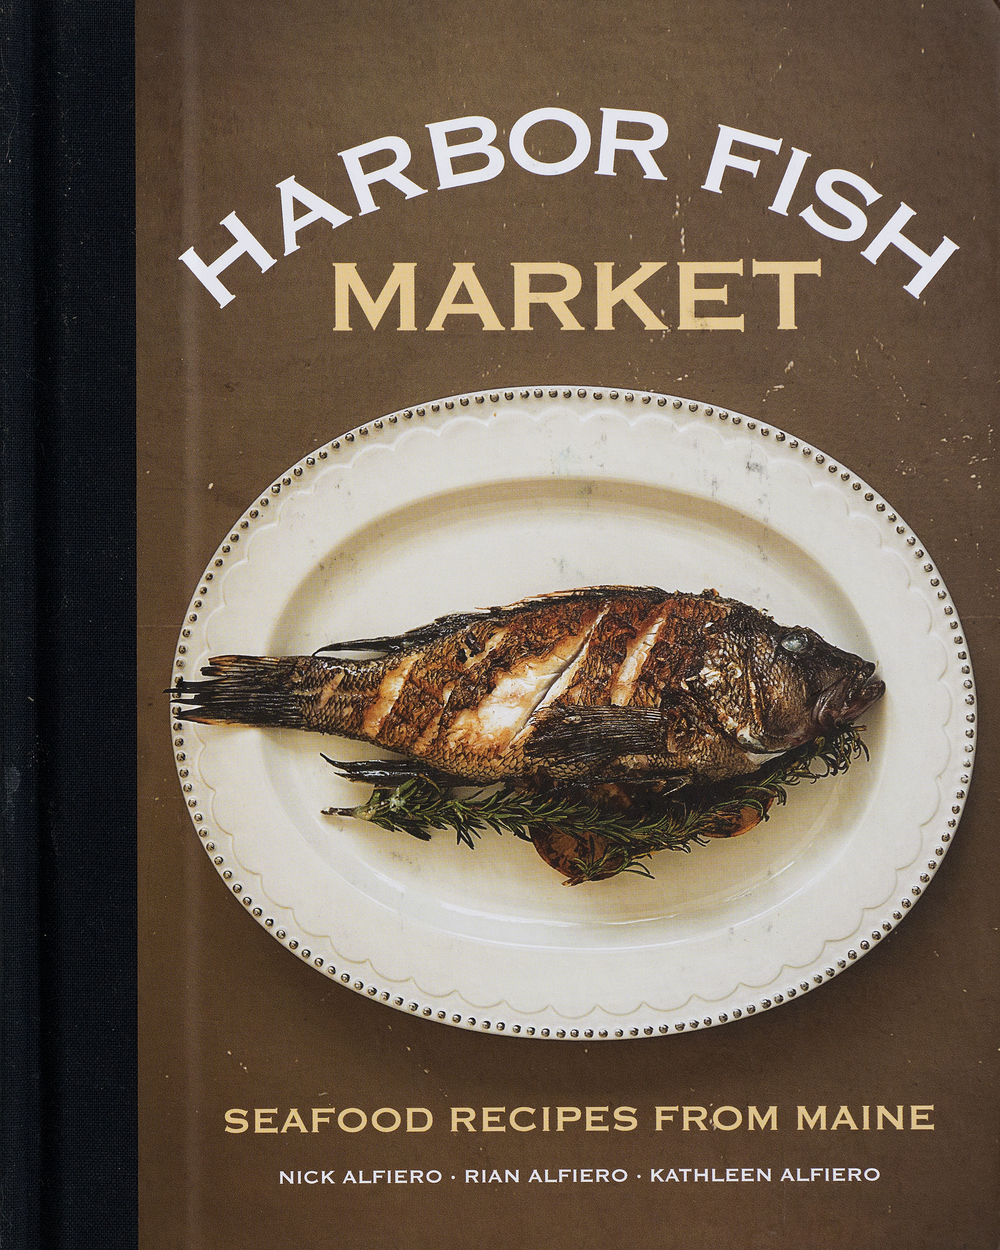 HarborFish©Merriam01.jpg